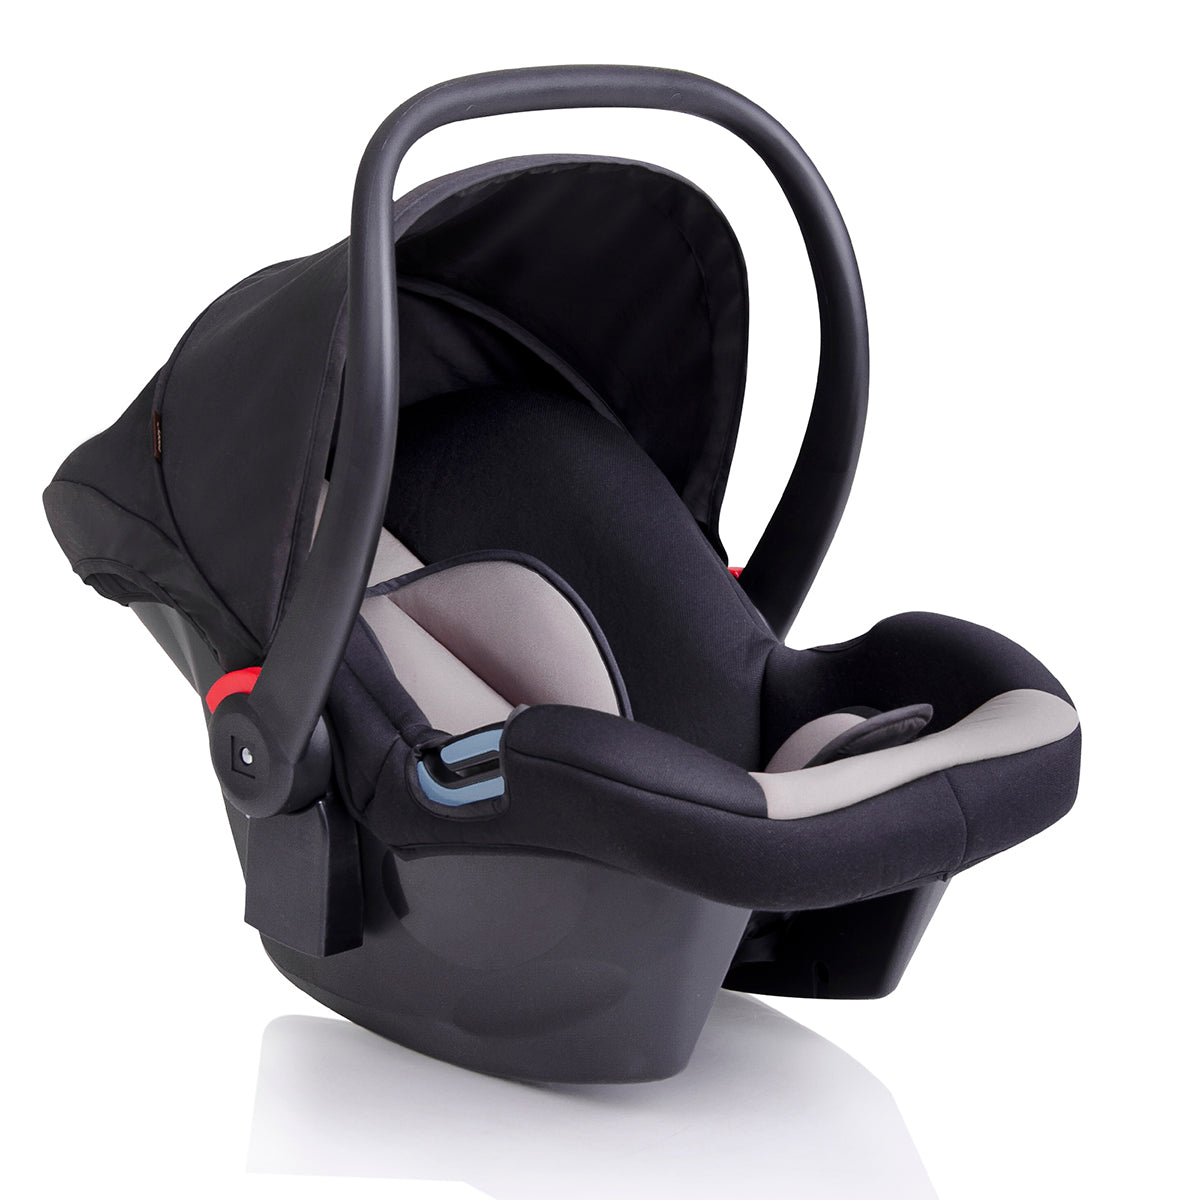 Car Seat, How to Buy a Good Baby Car Seat